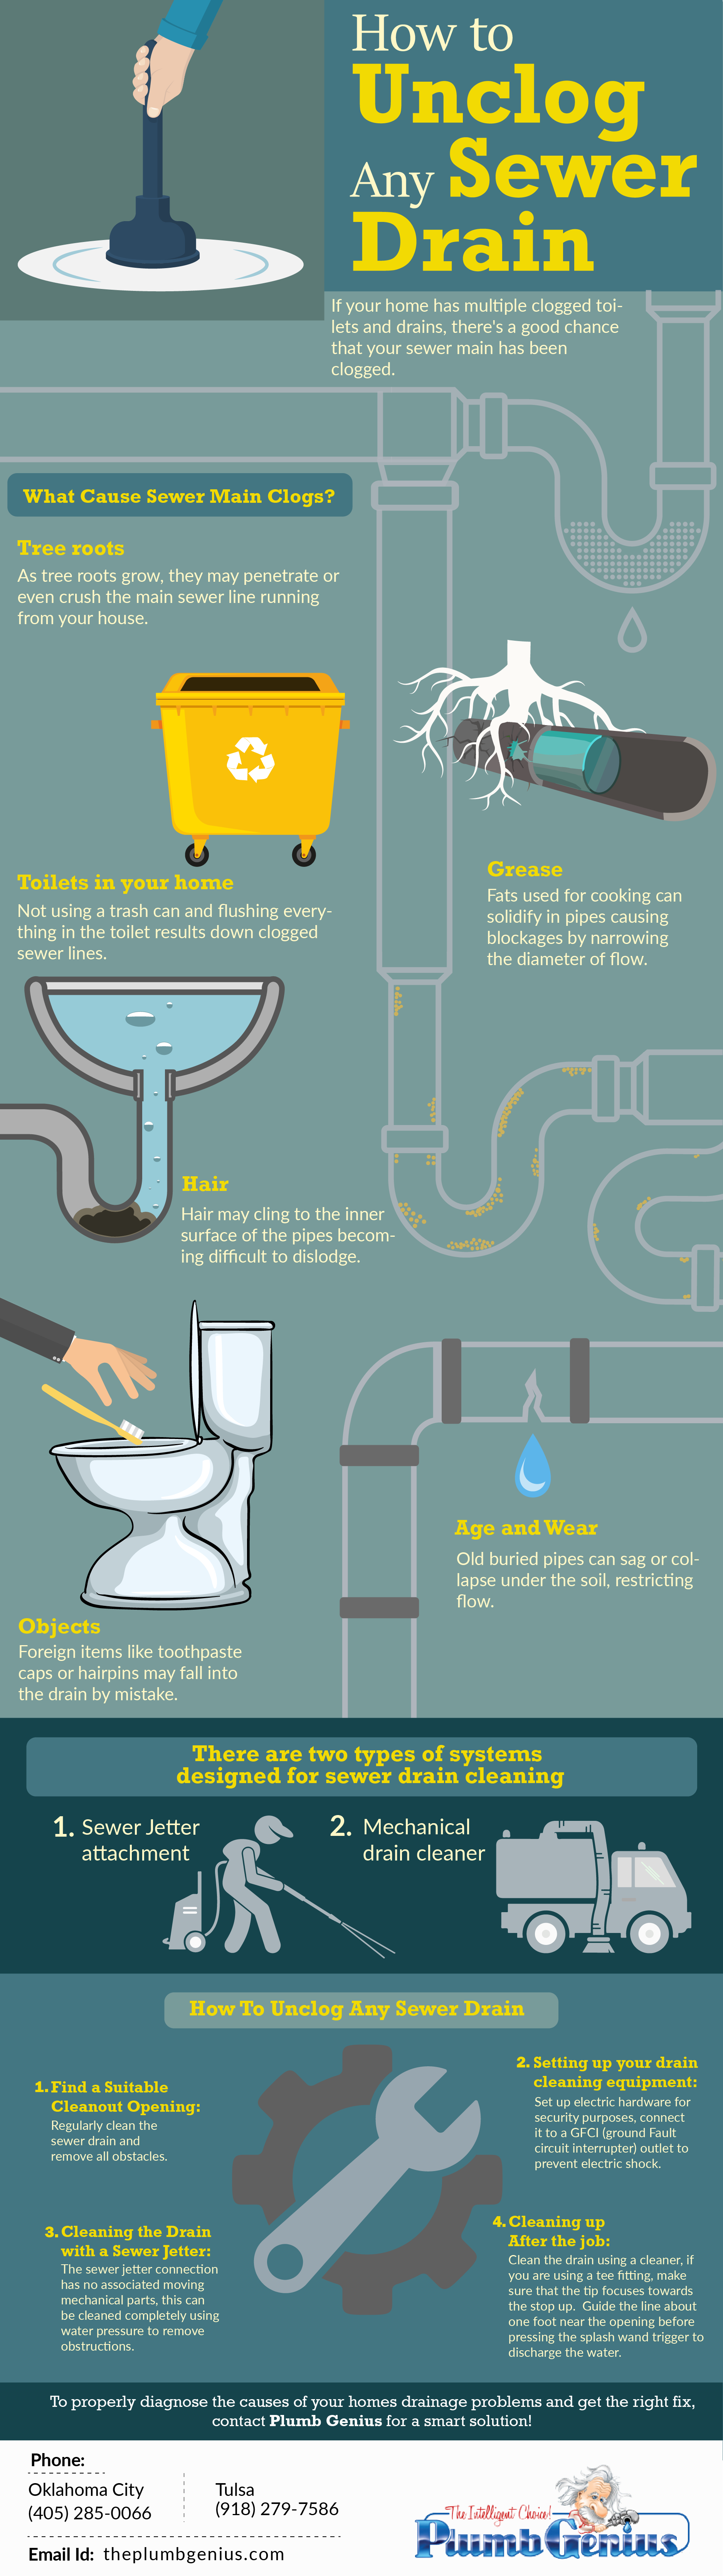 If You Re Like Many Homeowners Chances Are You Don T Give Much Thought To Your Plumbing Unless Somet Drain Cleaner Sewer Drain Cleaning Preventive Maintenance